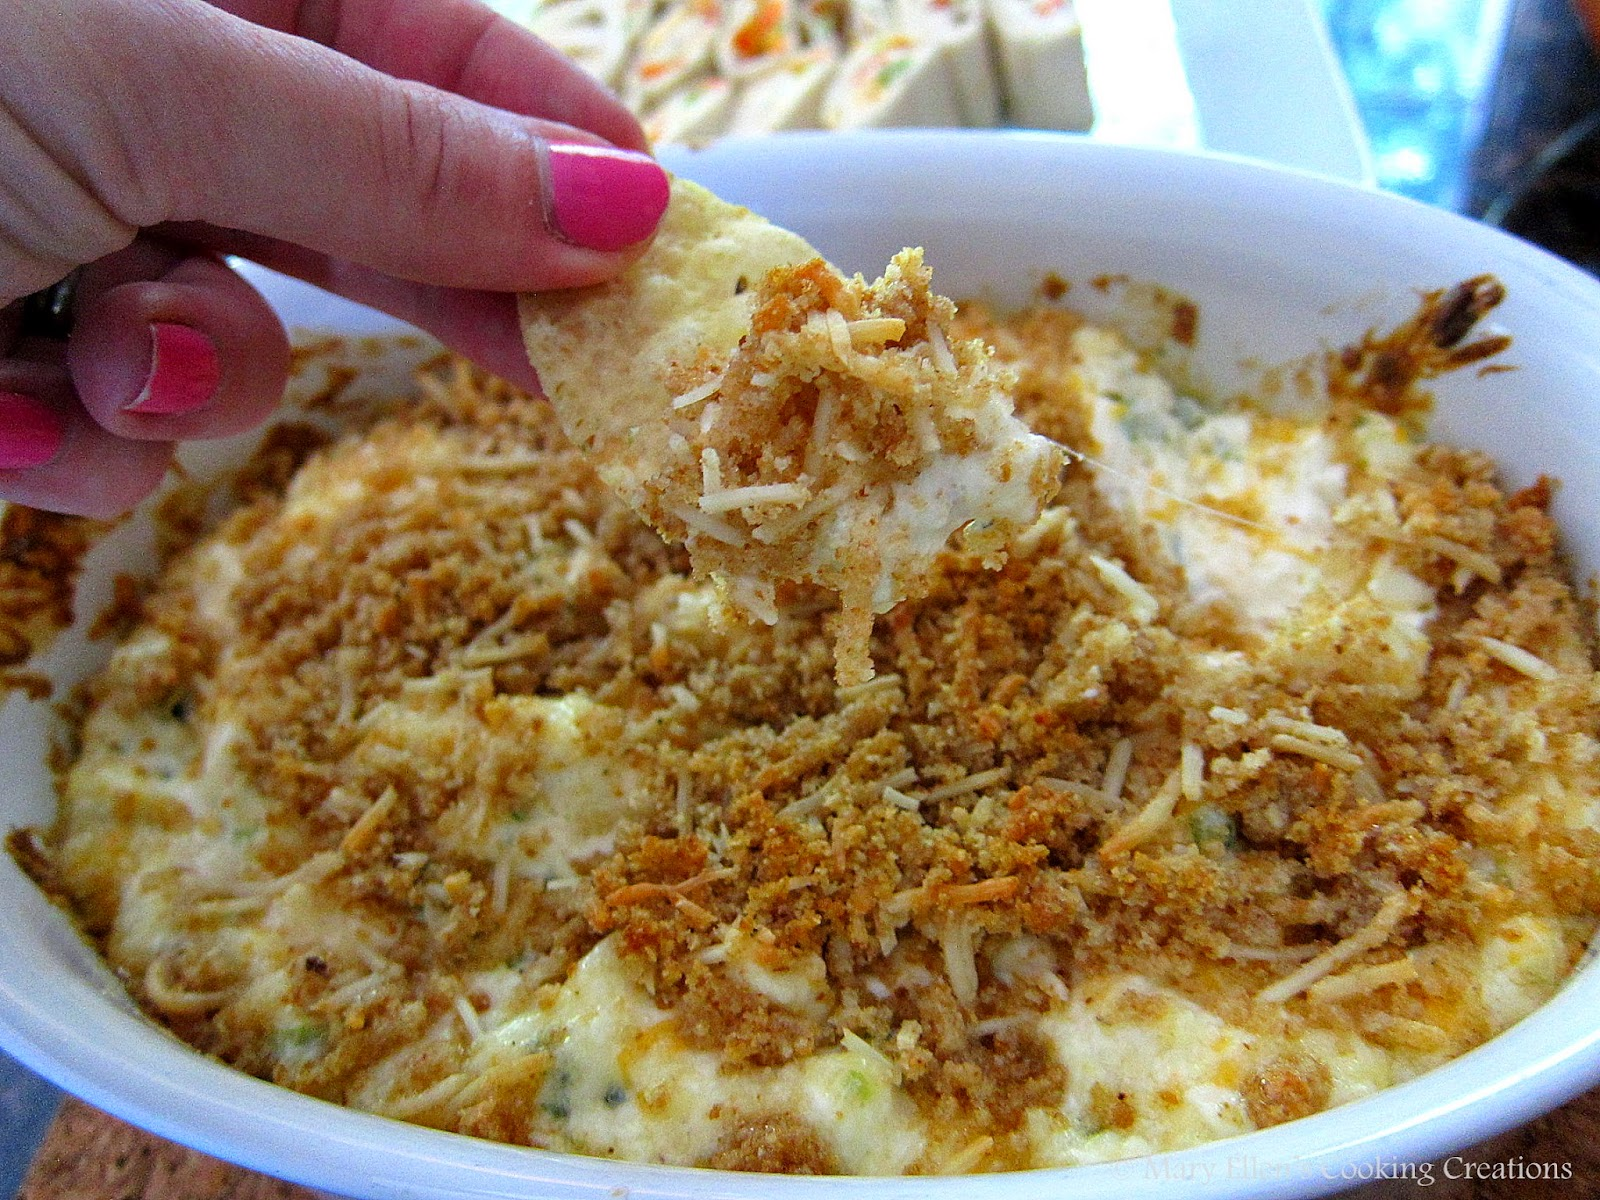 Mary Ellen's Cooking Creations: Jalapeno Popper Dip